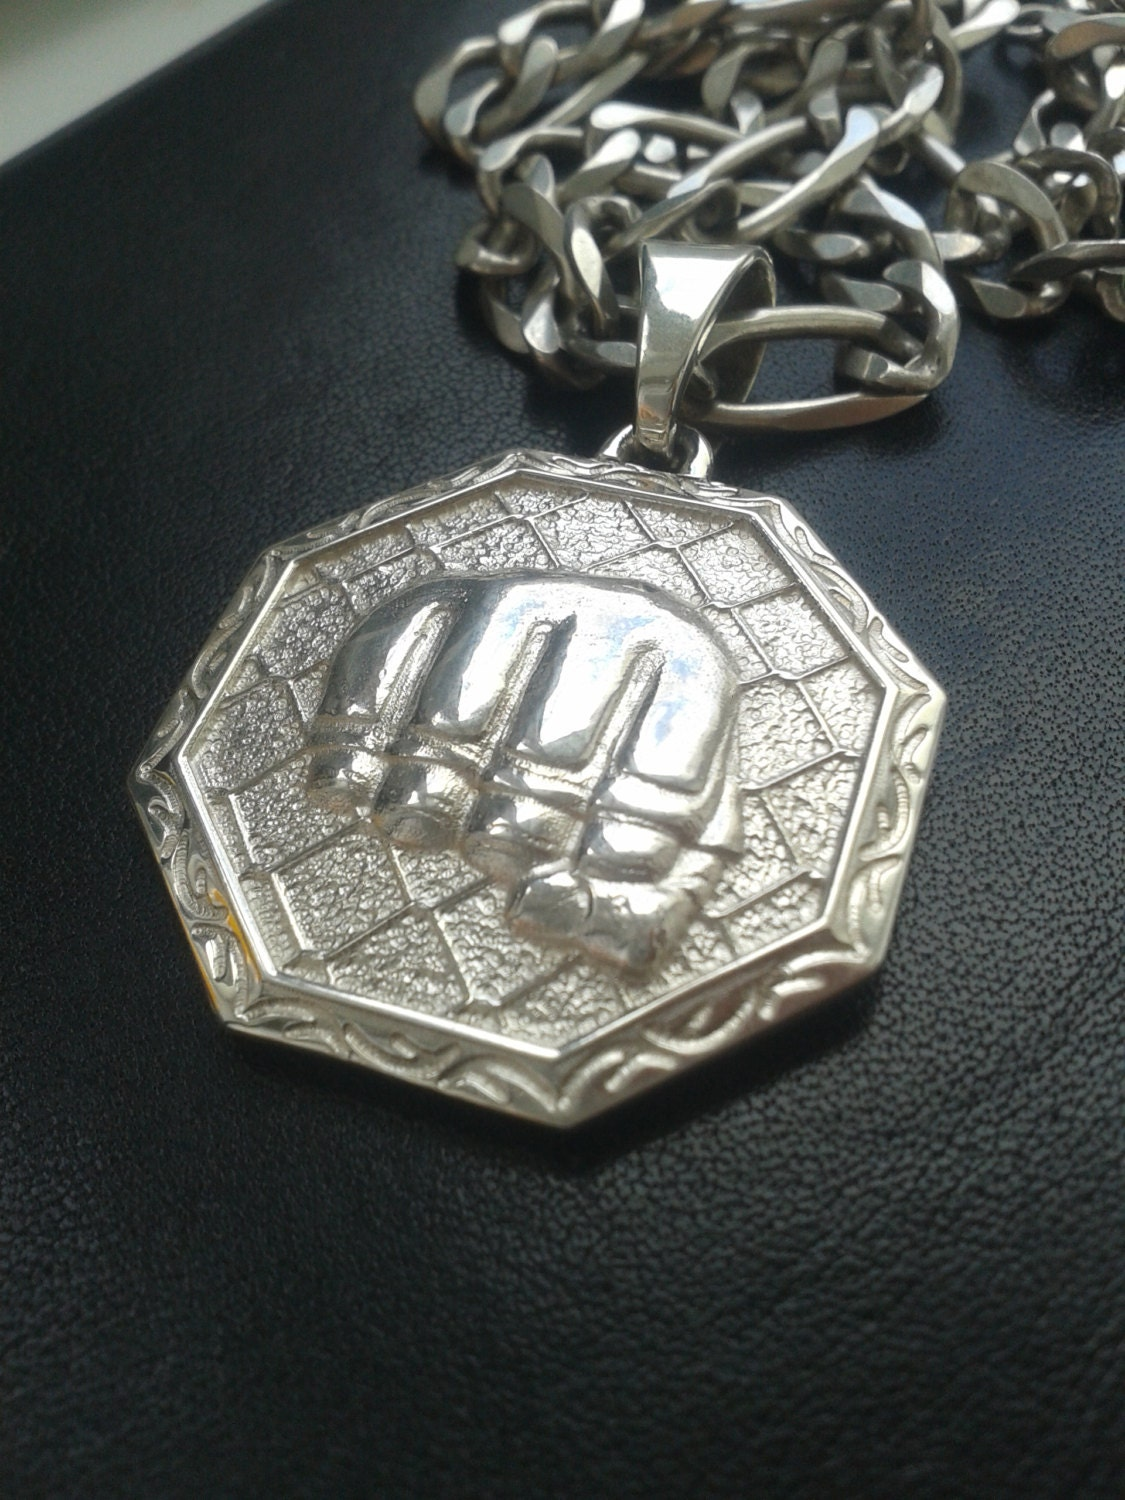 mixed martial arts mma silver pendant jewelry charm by